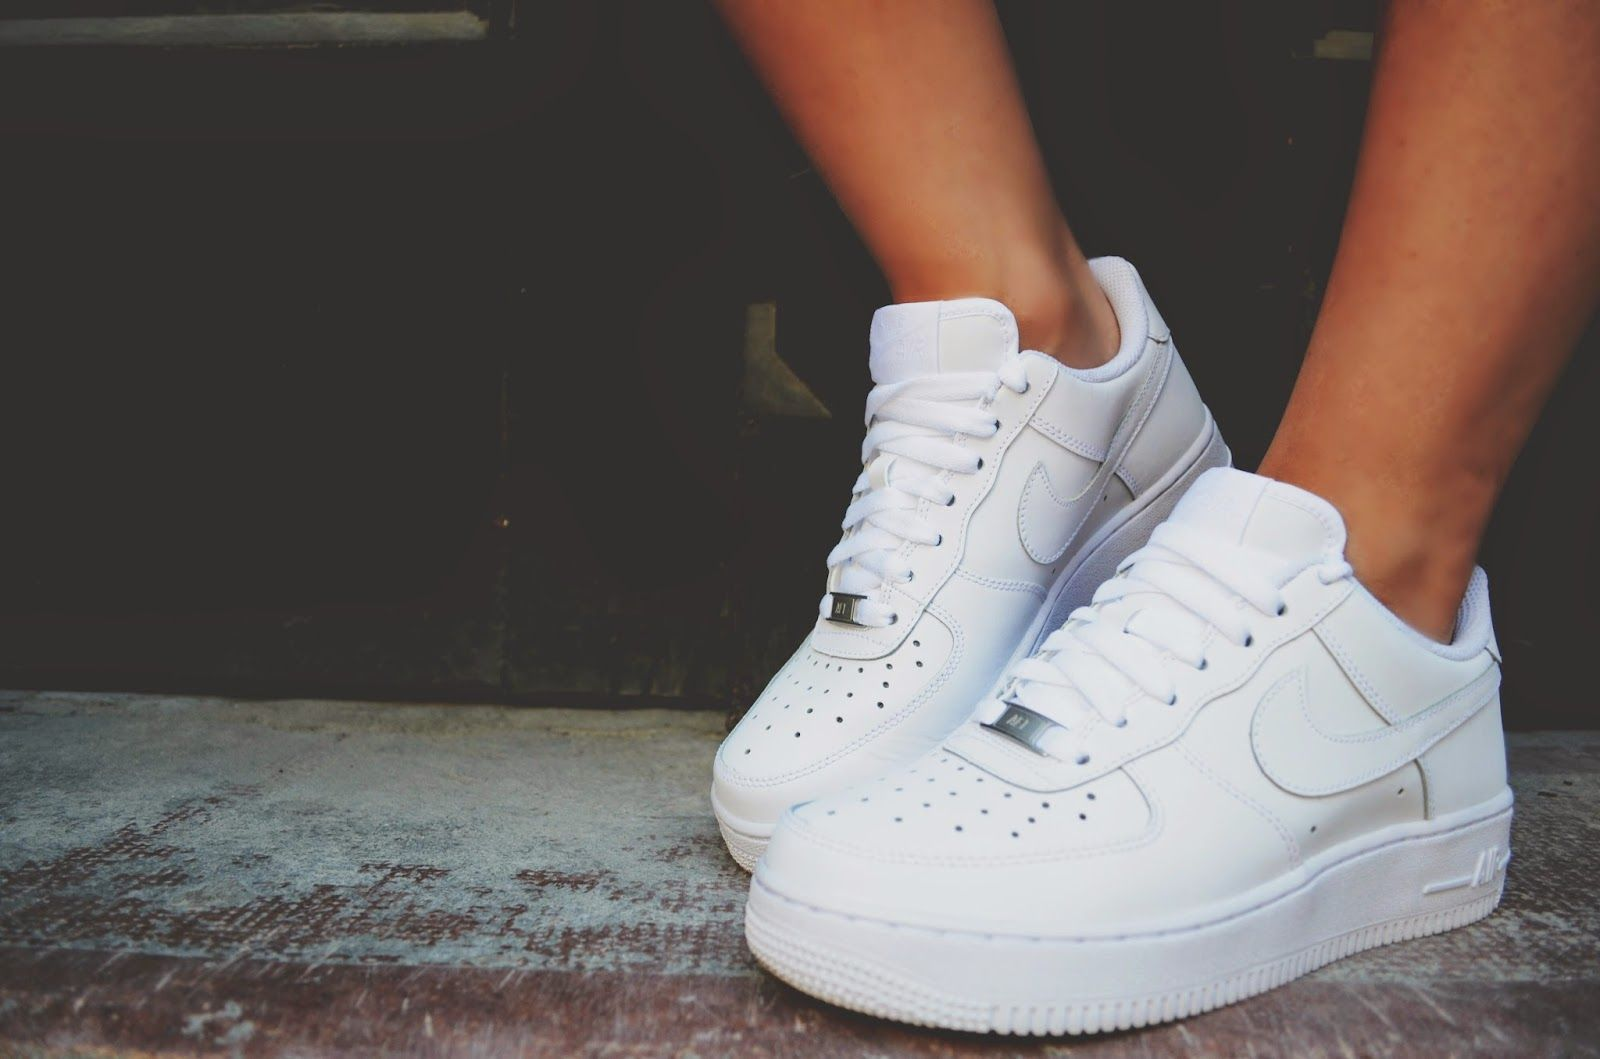 WEARING NIKE AIR FORCE 1 | Zapatillas nike blancas, Zapatos ...